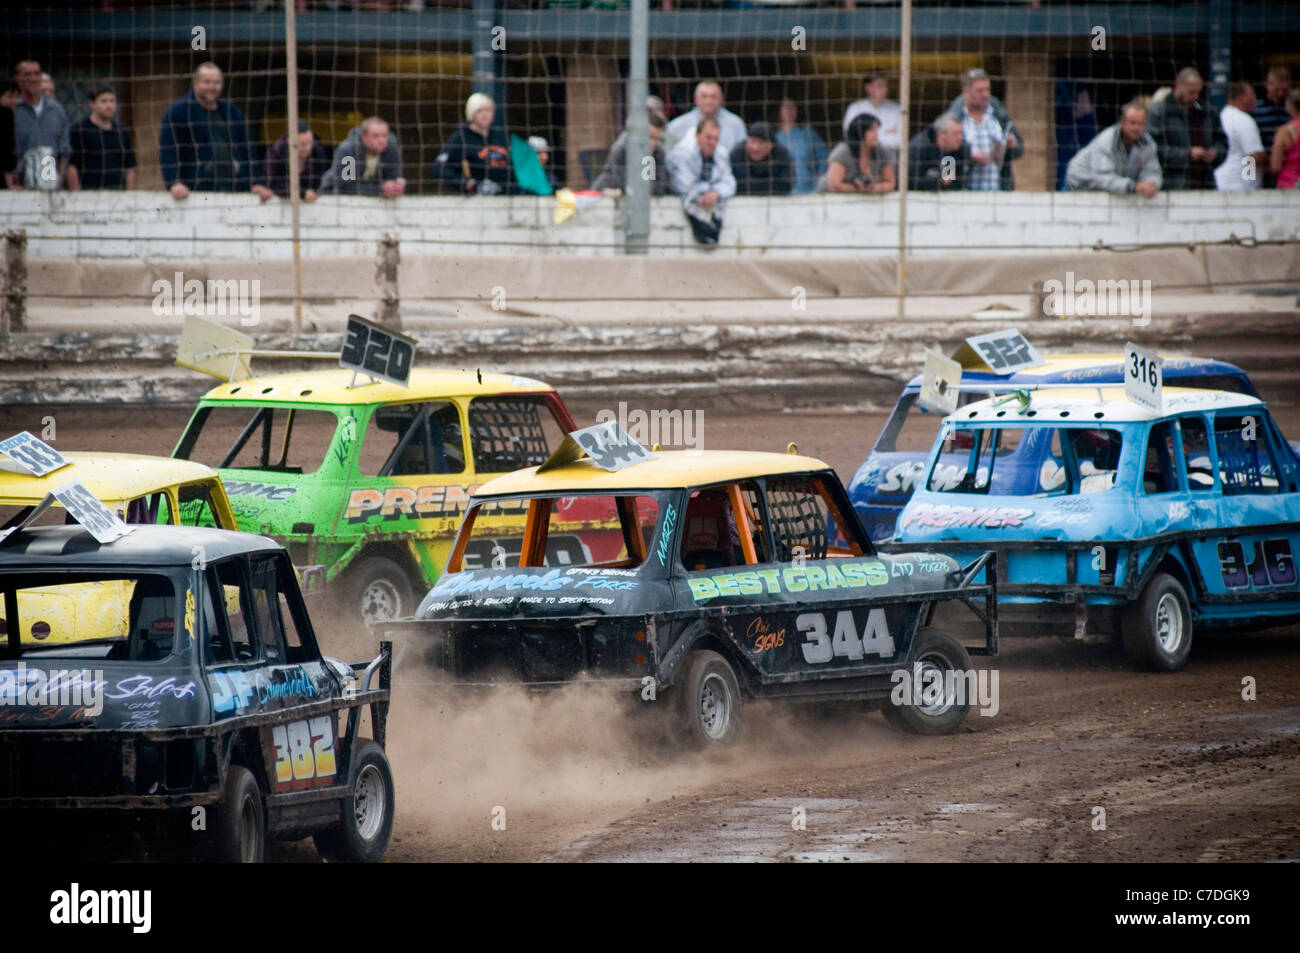 mini stocks car stock cars stockcars stockcar beginner children kids ...